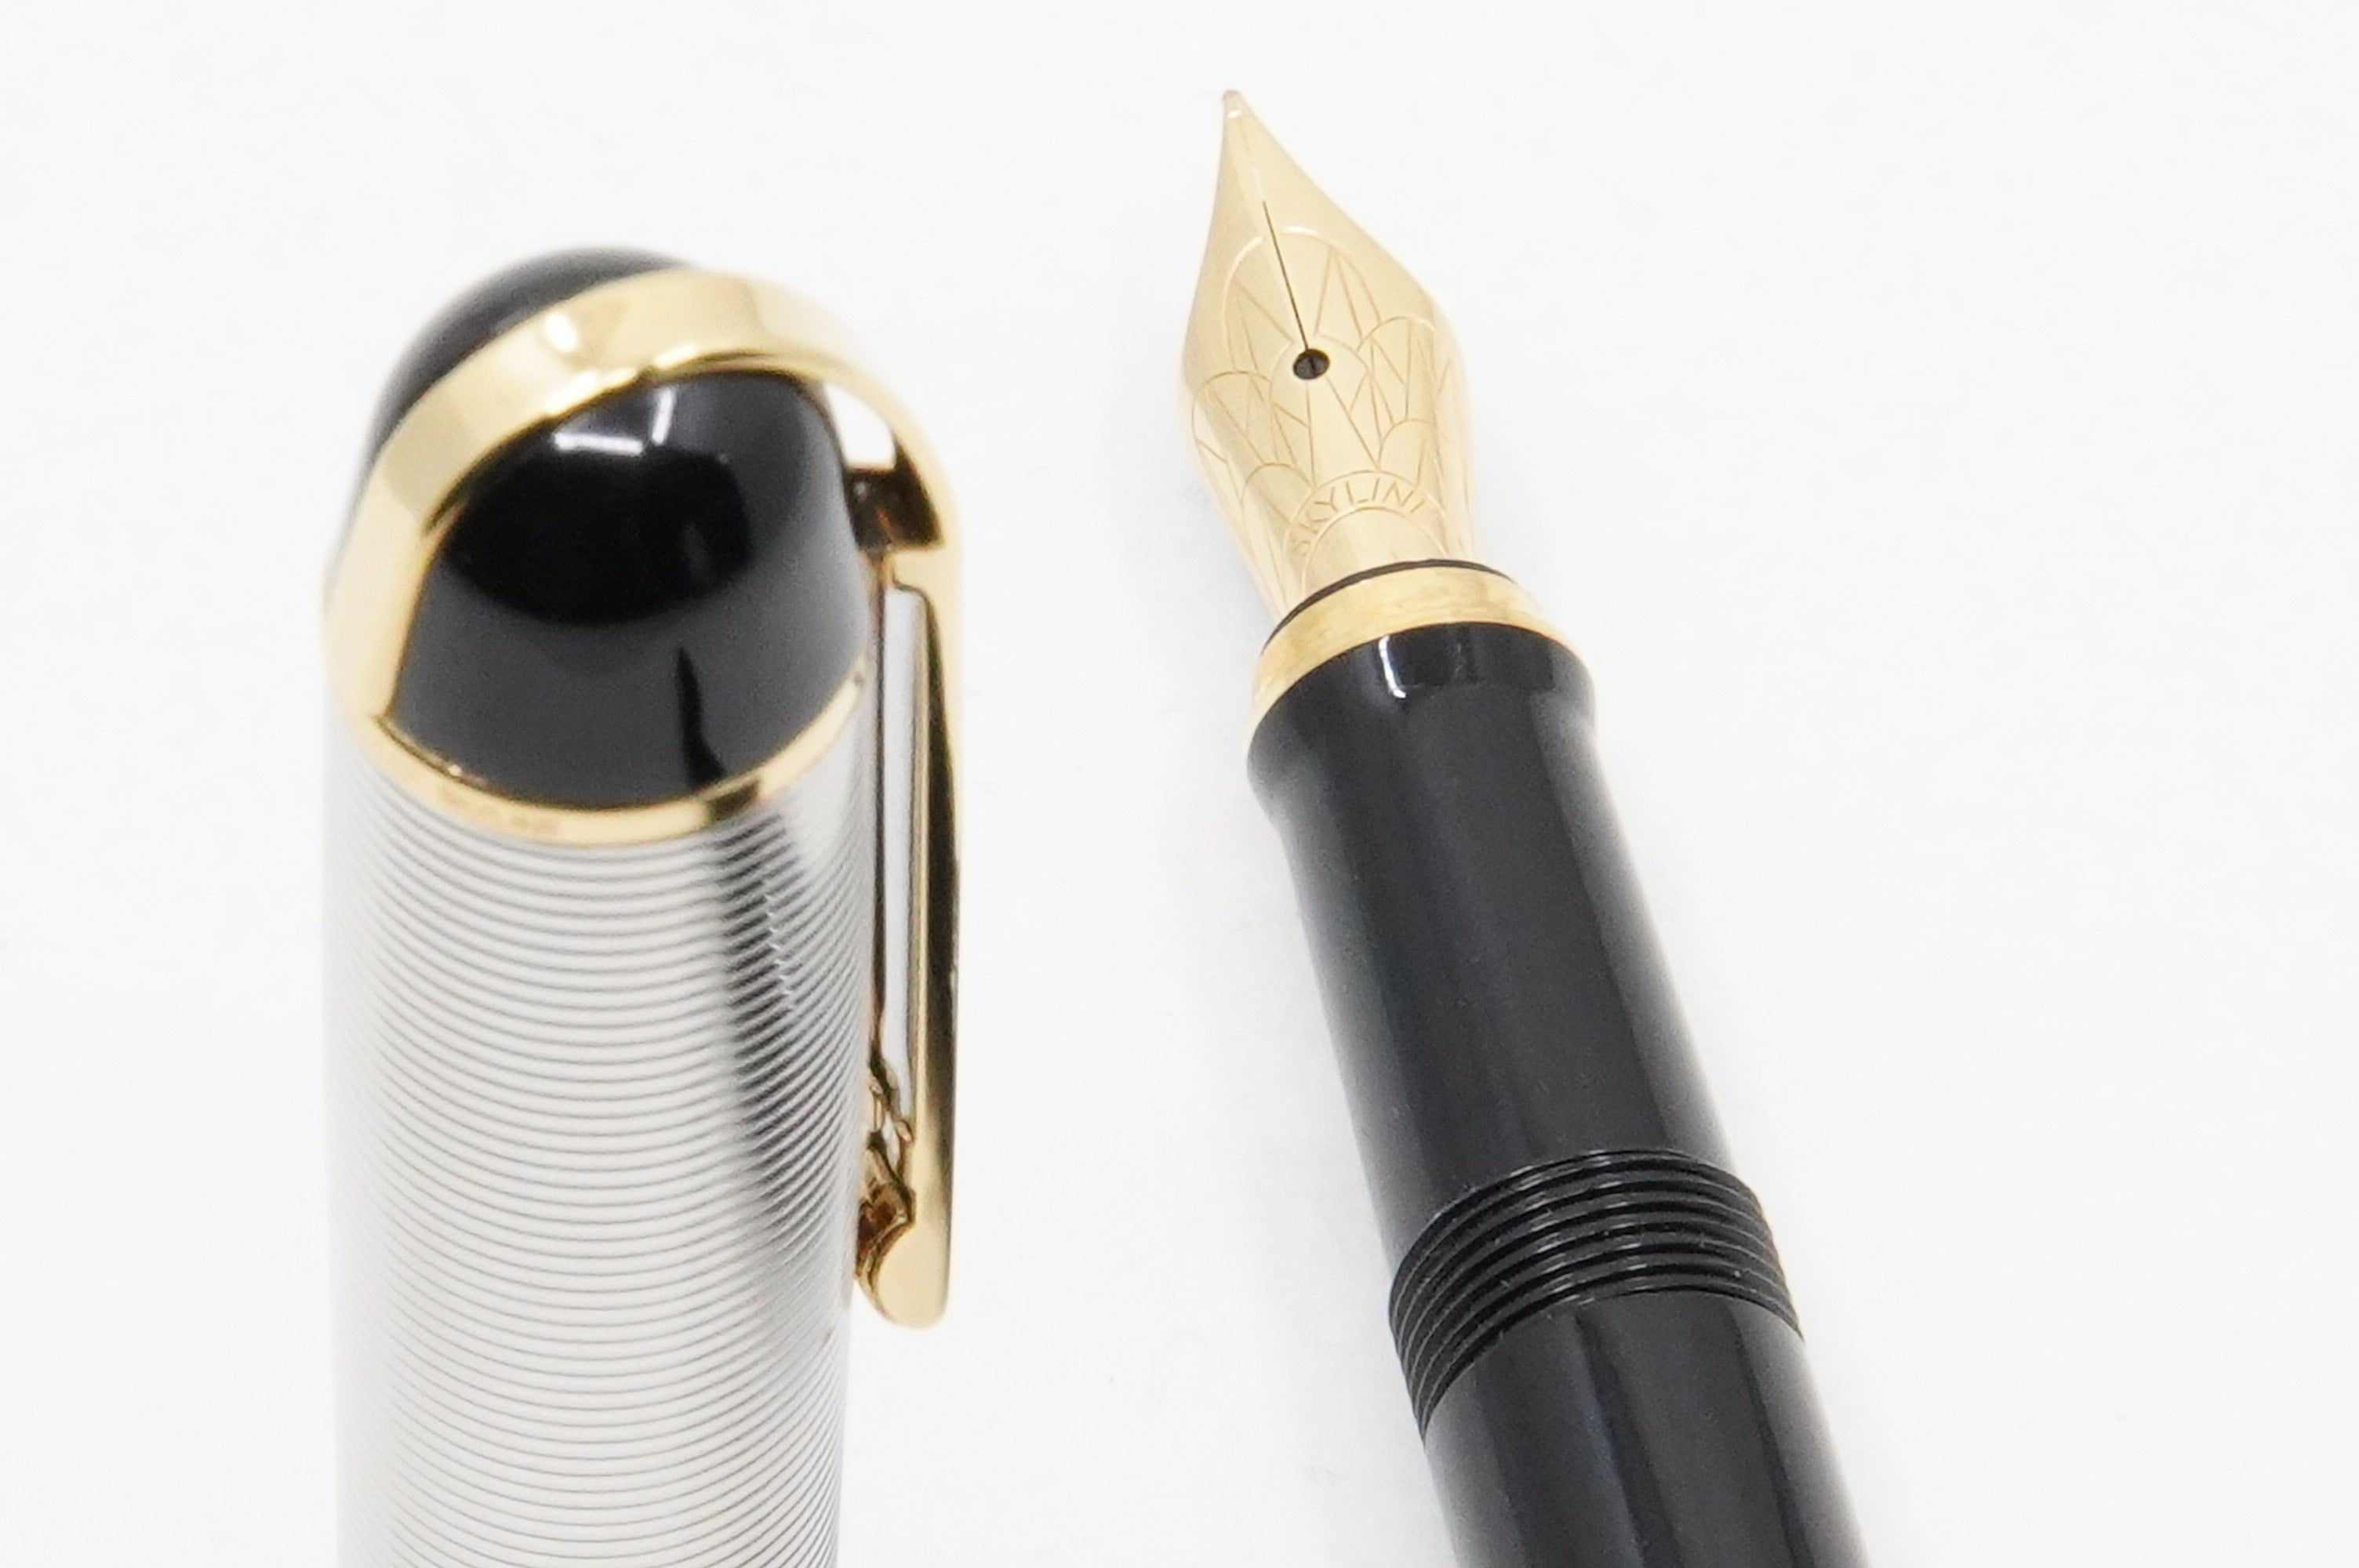 Wahl Eversharp Skyline FP black - The iconic SKYLINE created by Henry Dreyfus in 1939